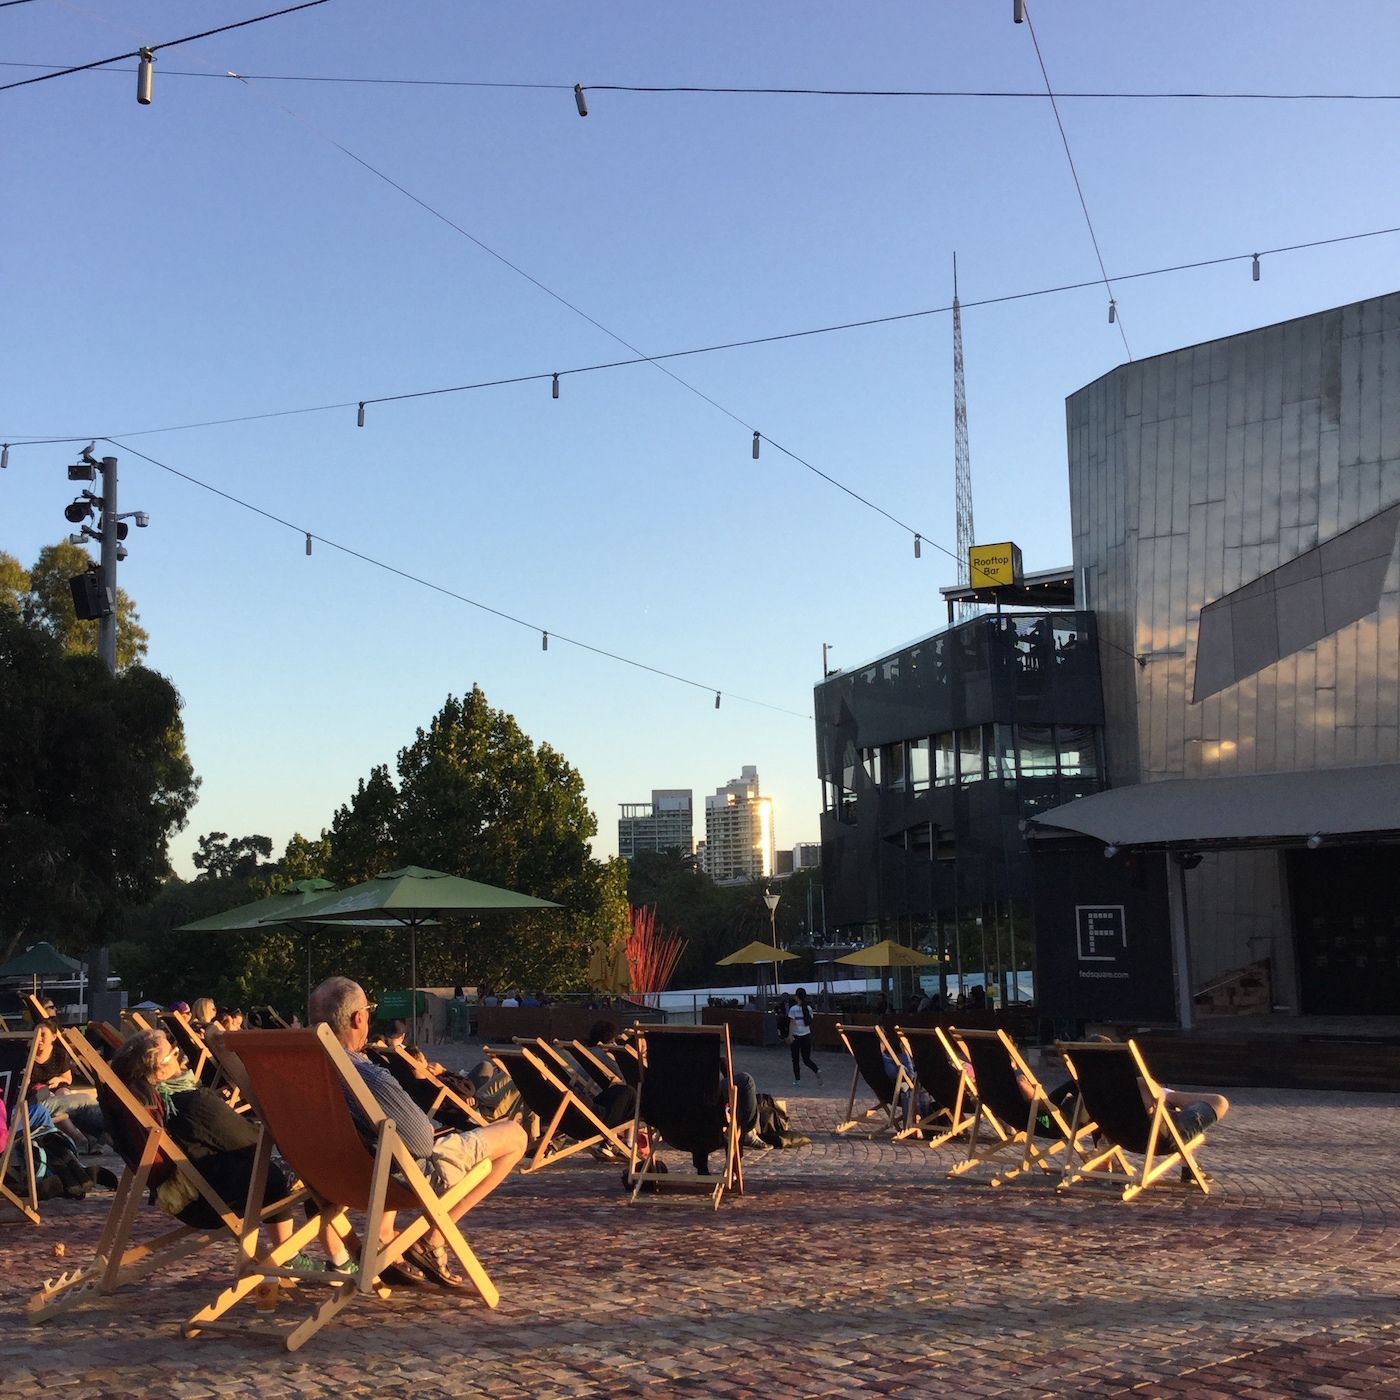 Deck chairs at Federation Square, Melbourne